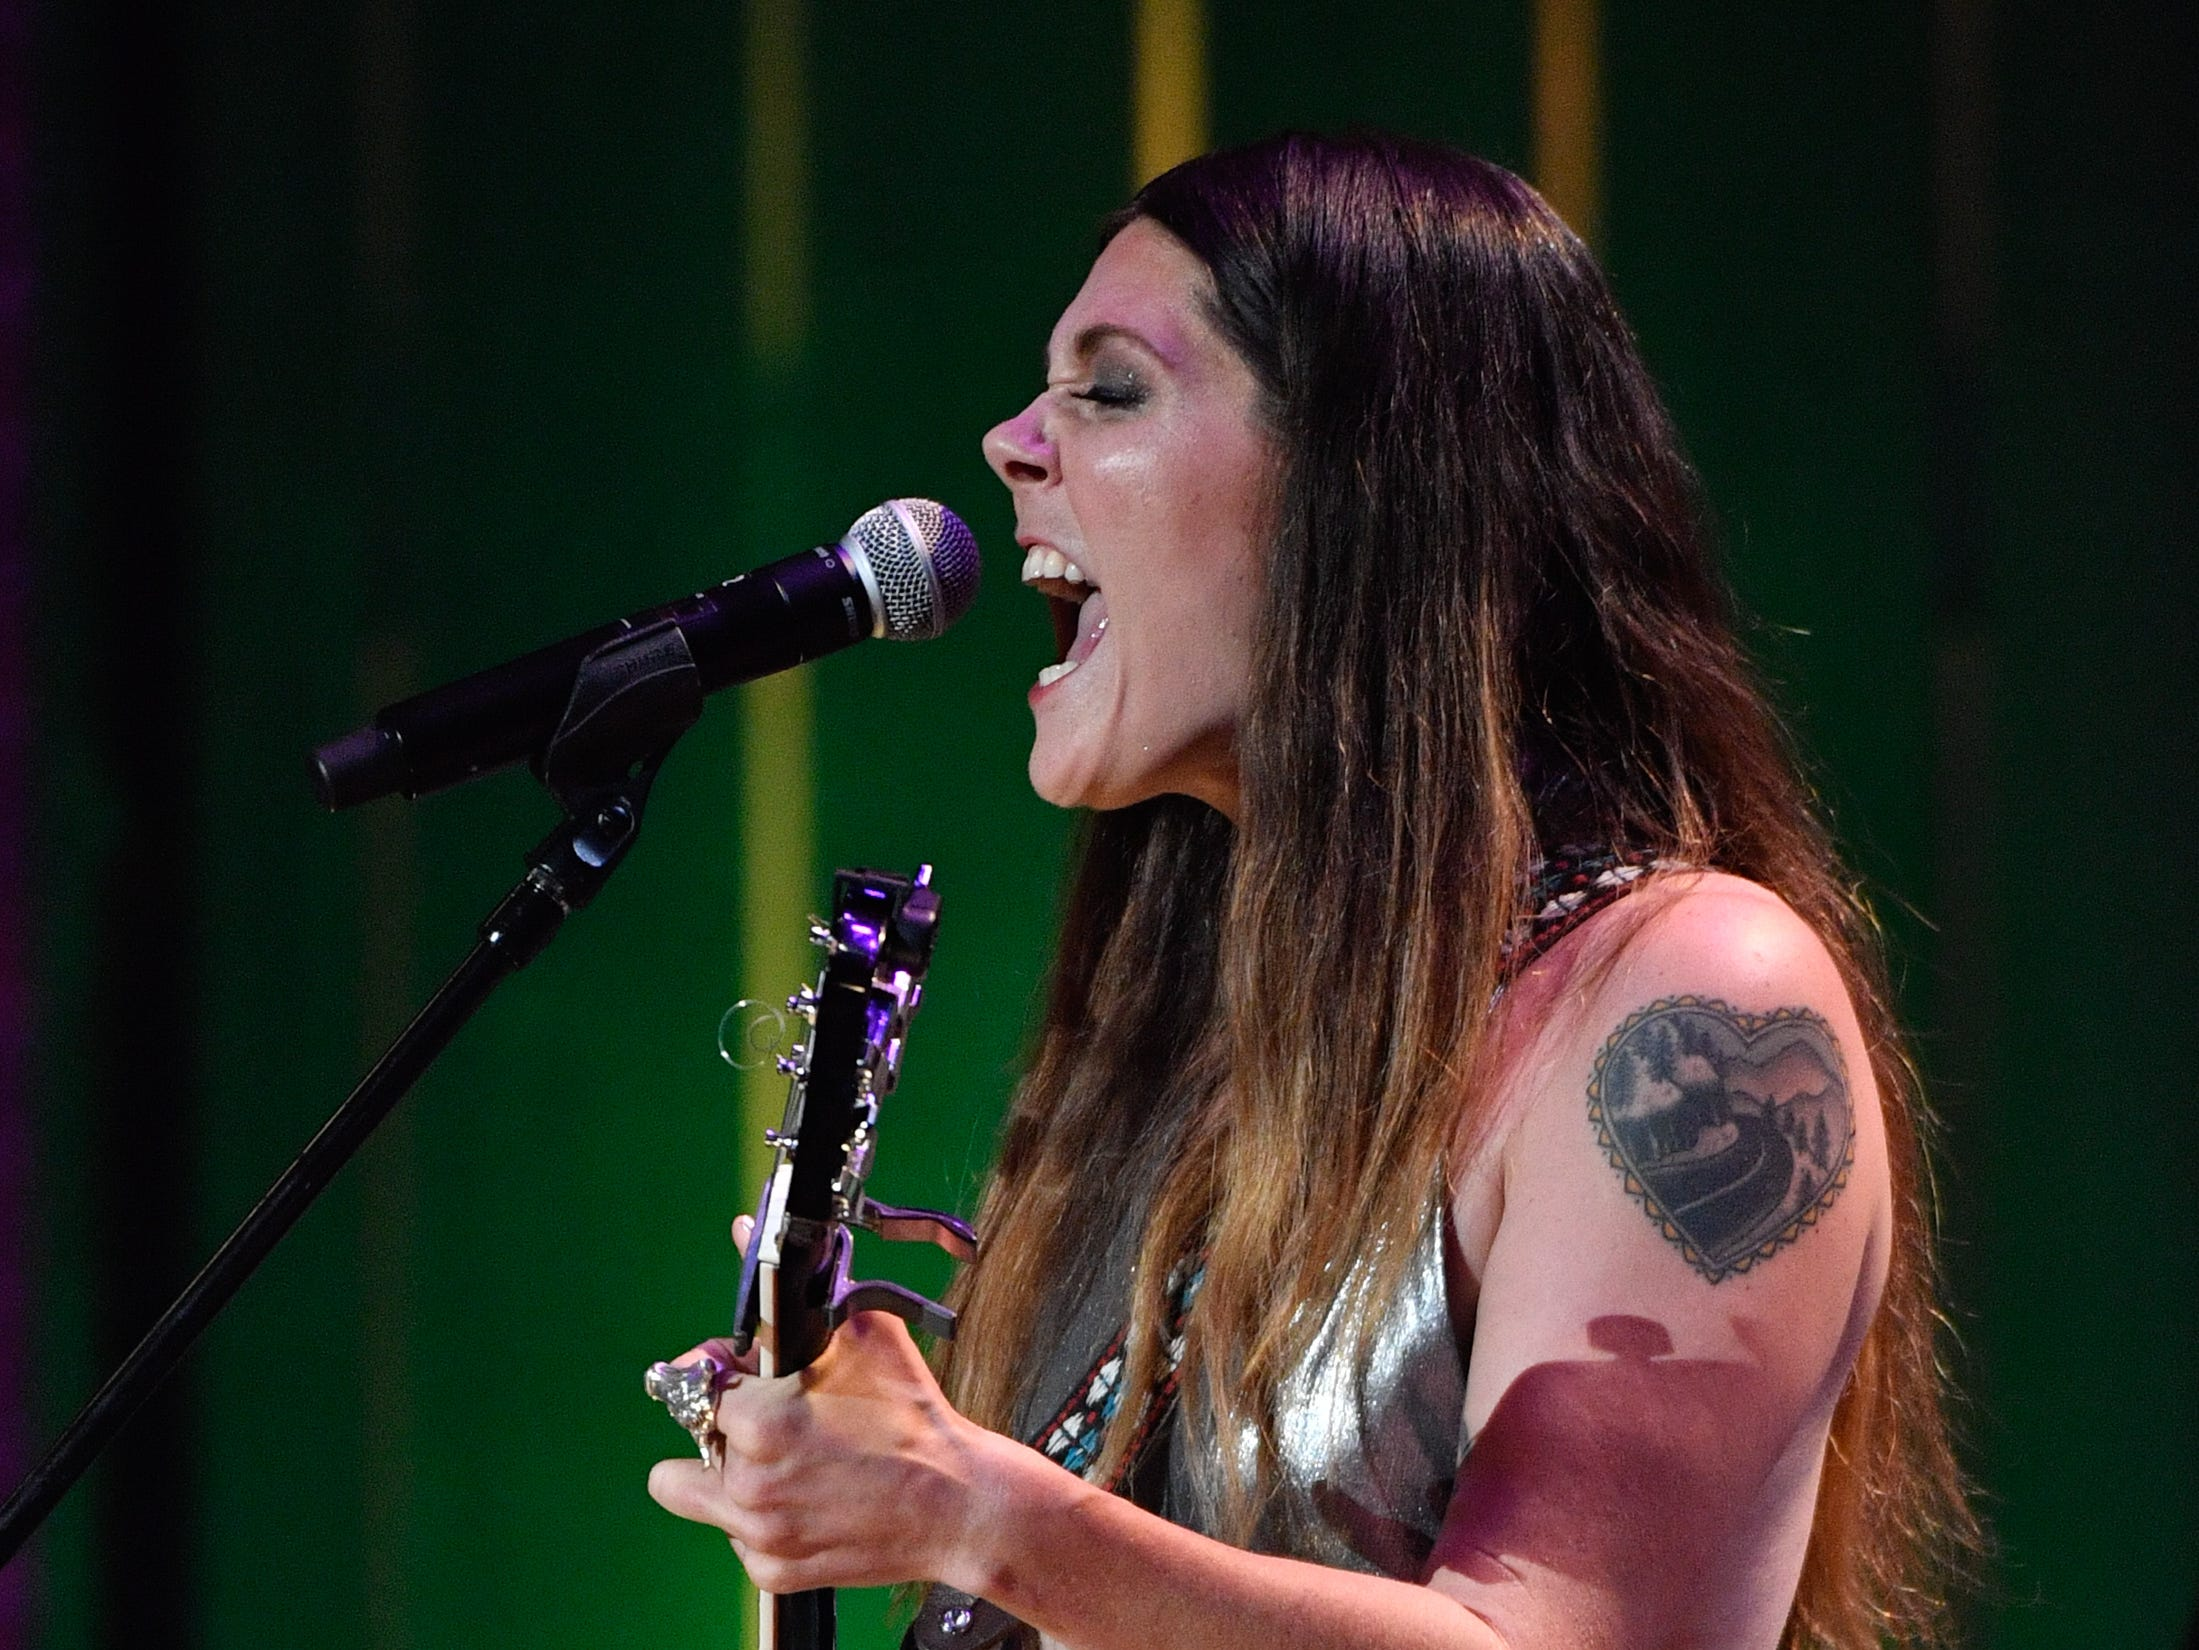 Lilly Hiatt performs during the 2018 Americana Honors and Awards show at the Ryman Auditorium in Nashville, Tenn., Wednesday, Sept. 12, 2018.